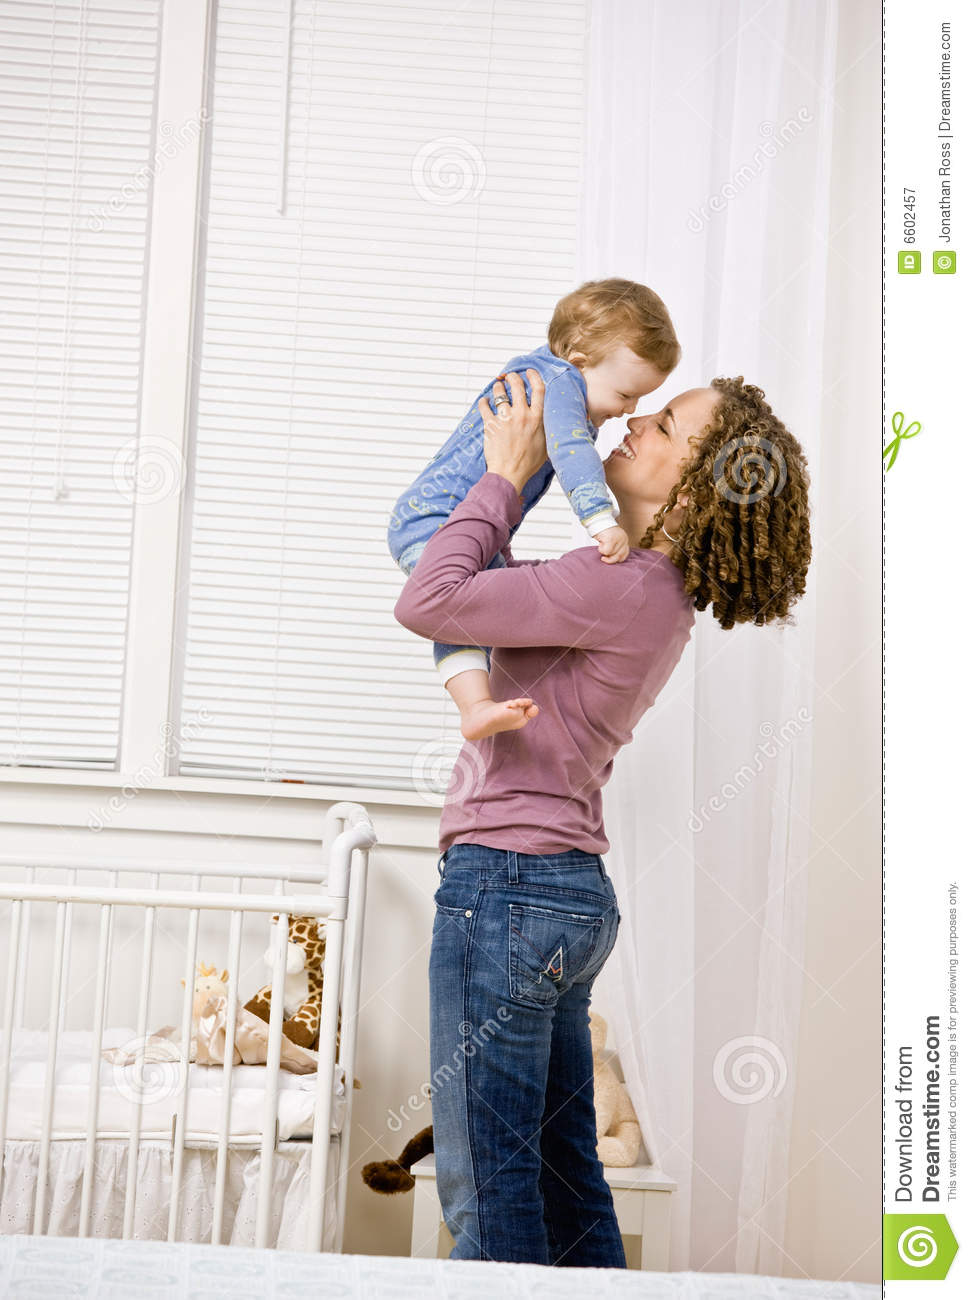 mother lifting son from crib in bedroom royalty free stock